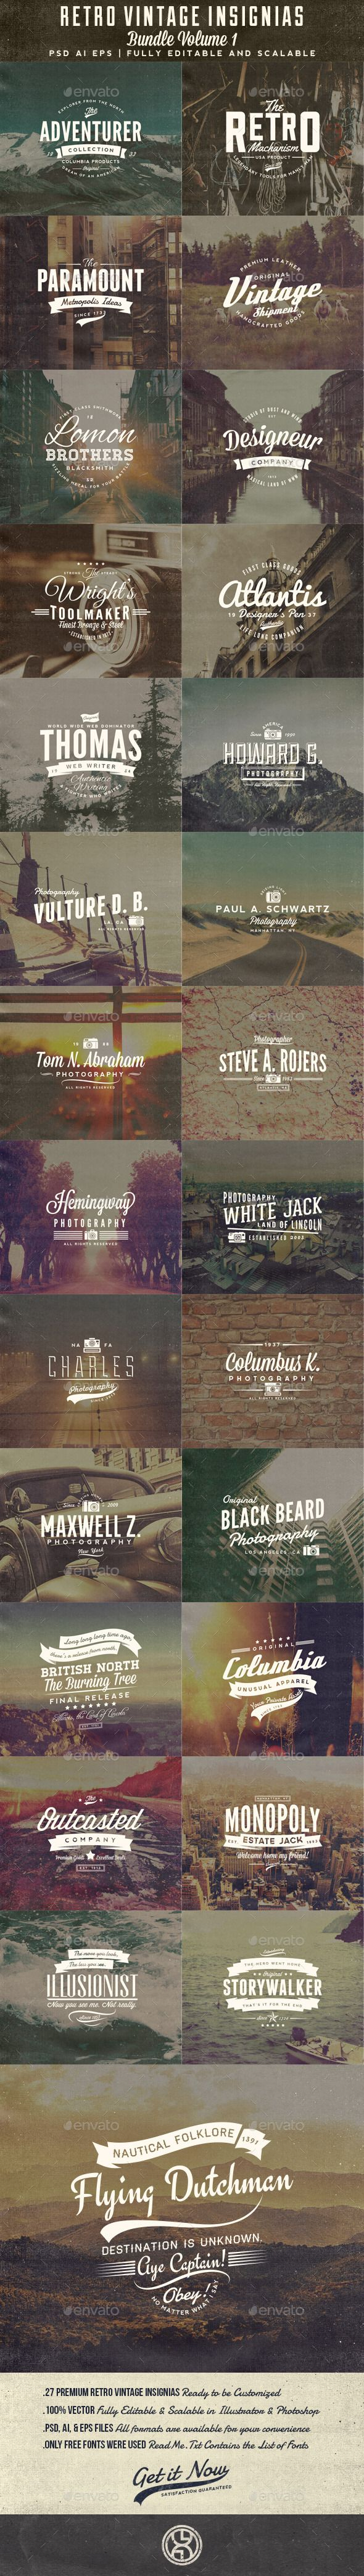 best inspiration text and typography images on pinterest